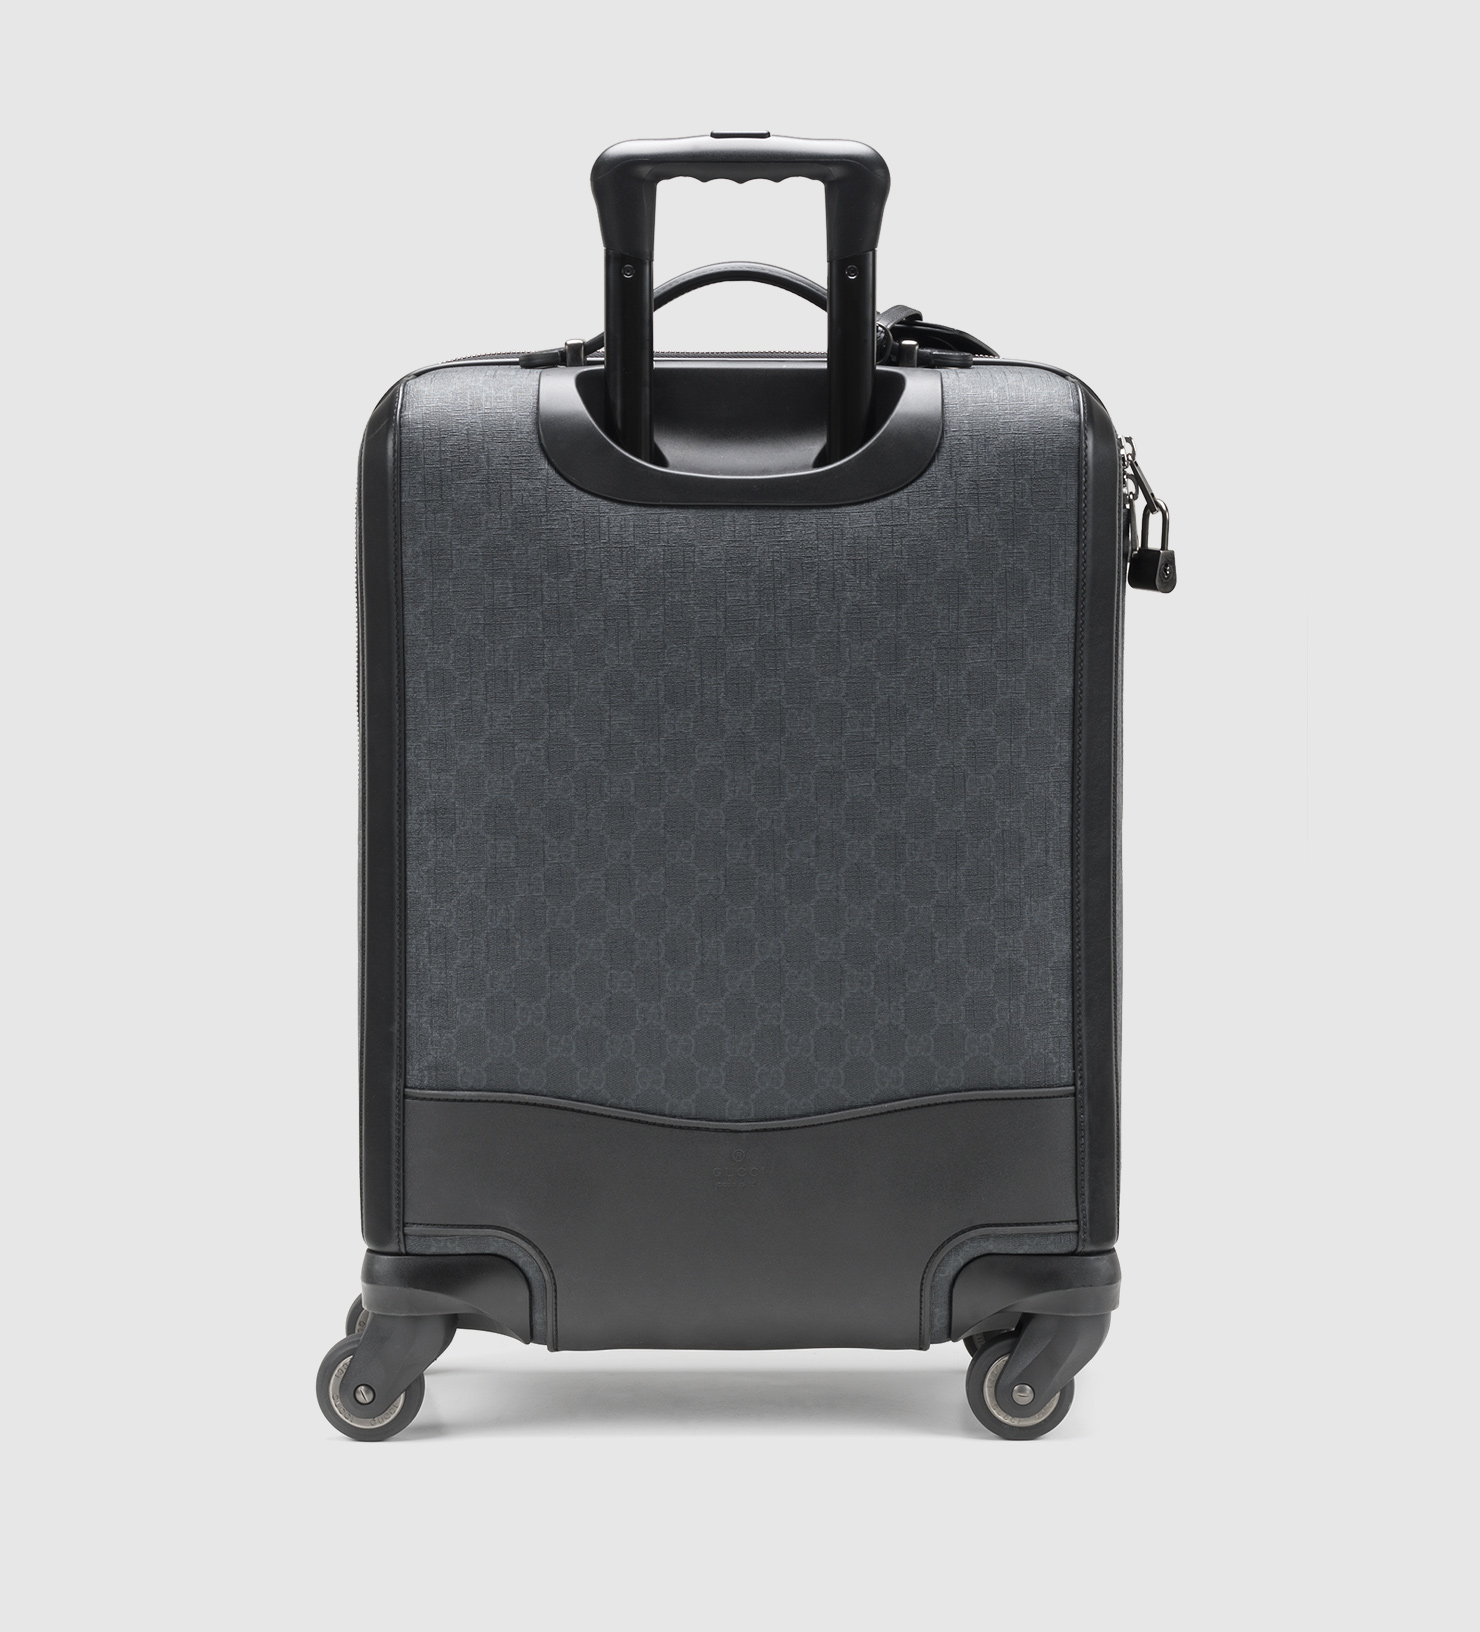 19e5b86eaaf Lyst - Gucci Gg Supreme Canvas Wheeled Carry-on Suitcase in Black ...